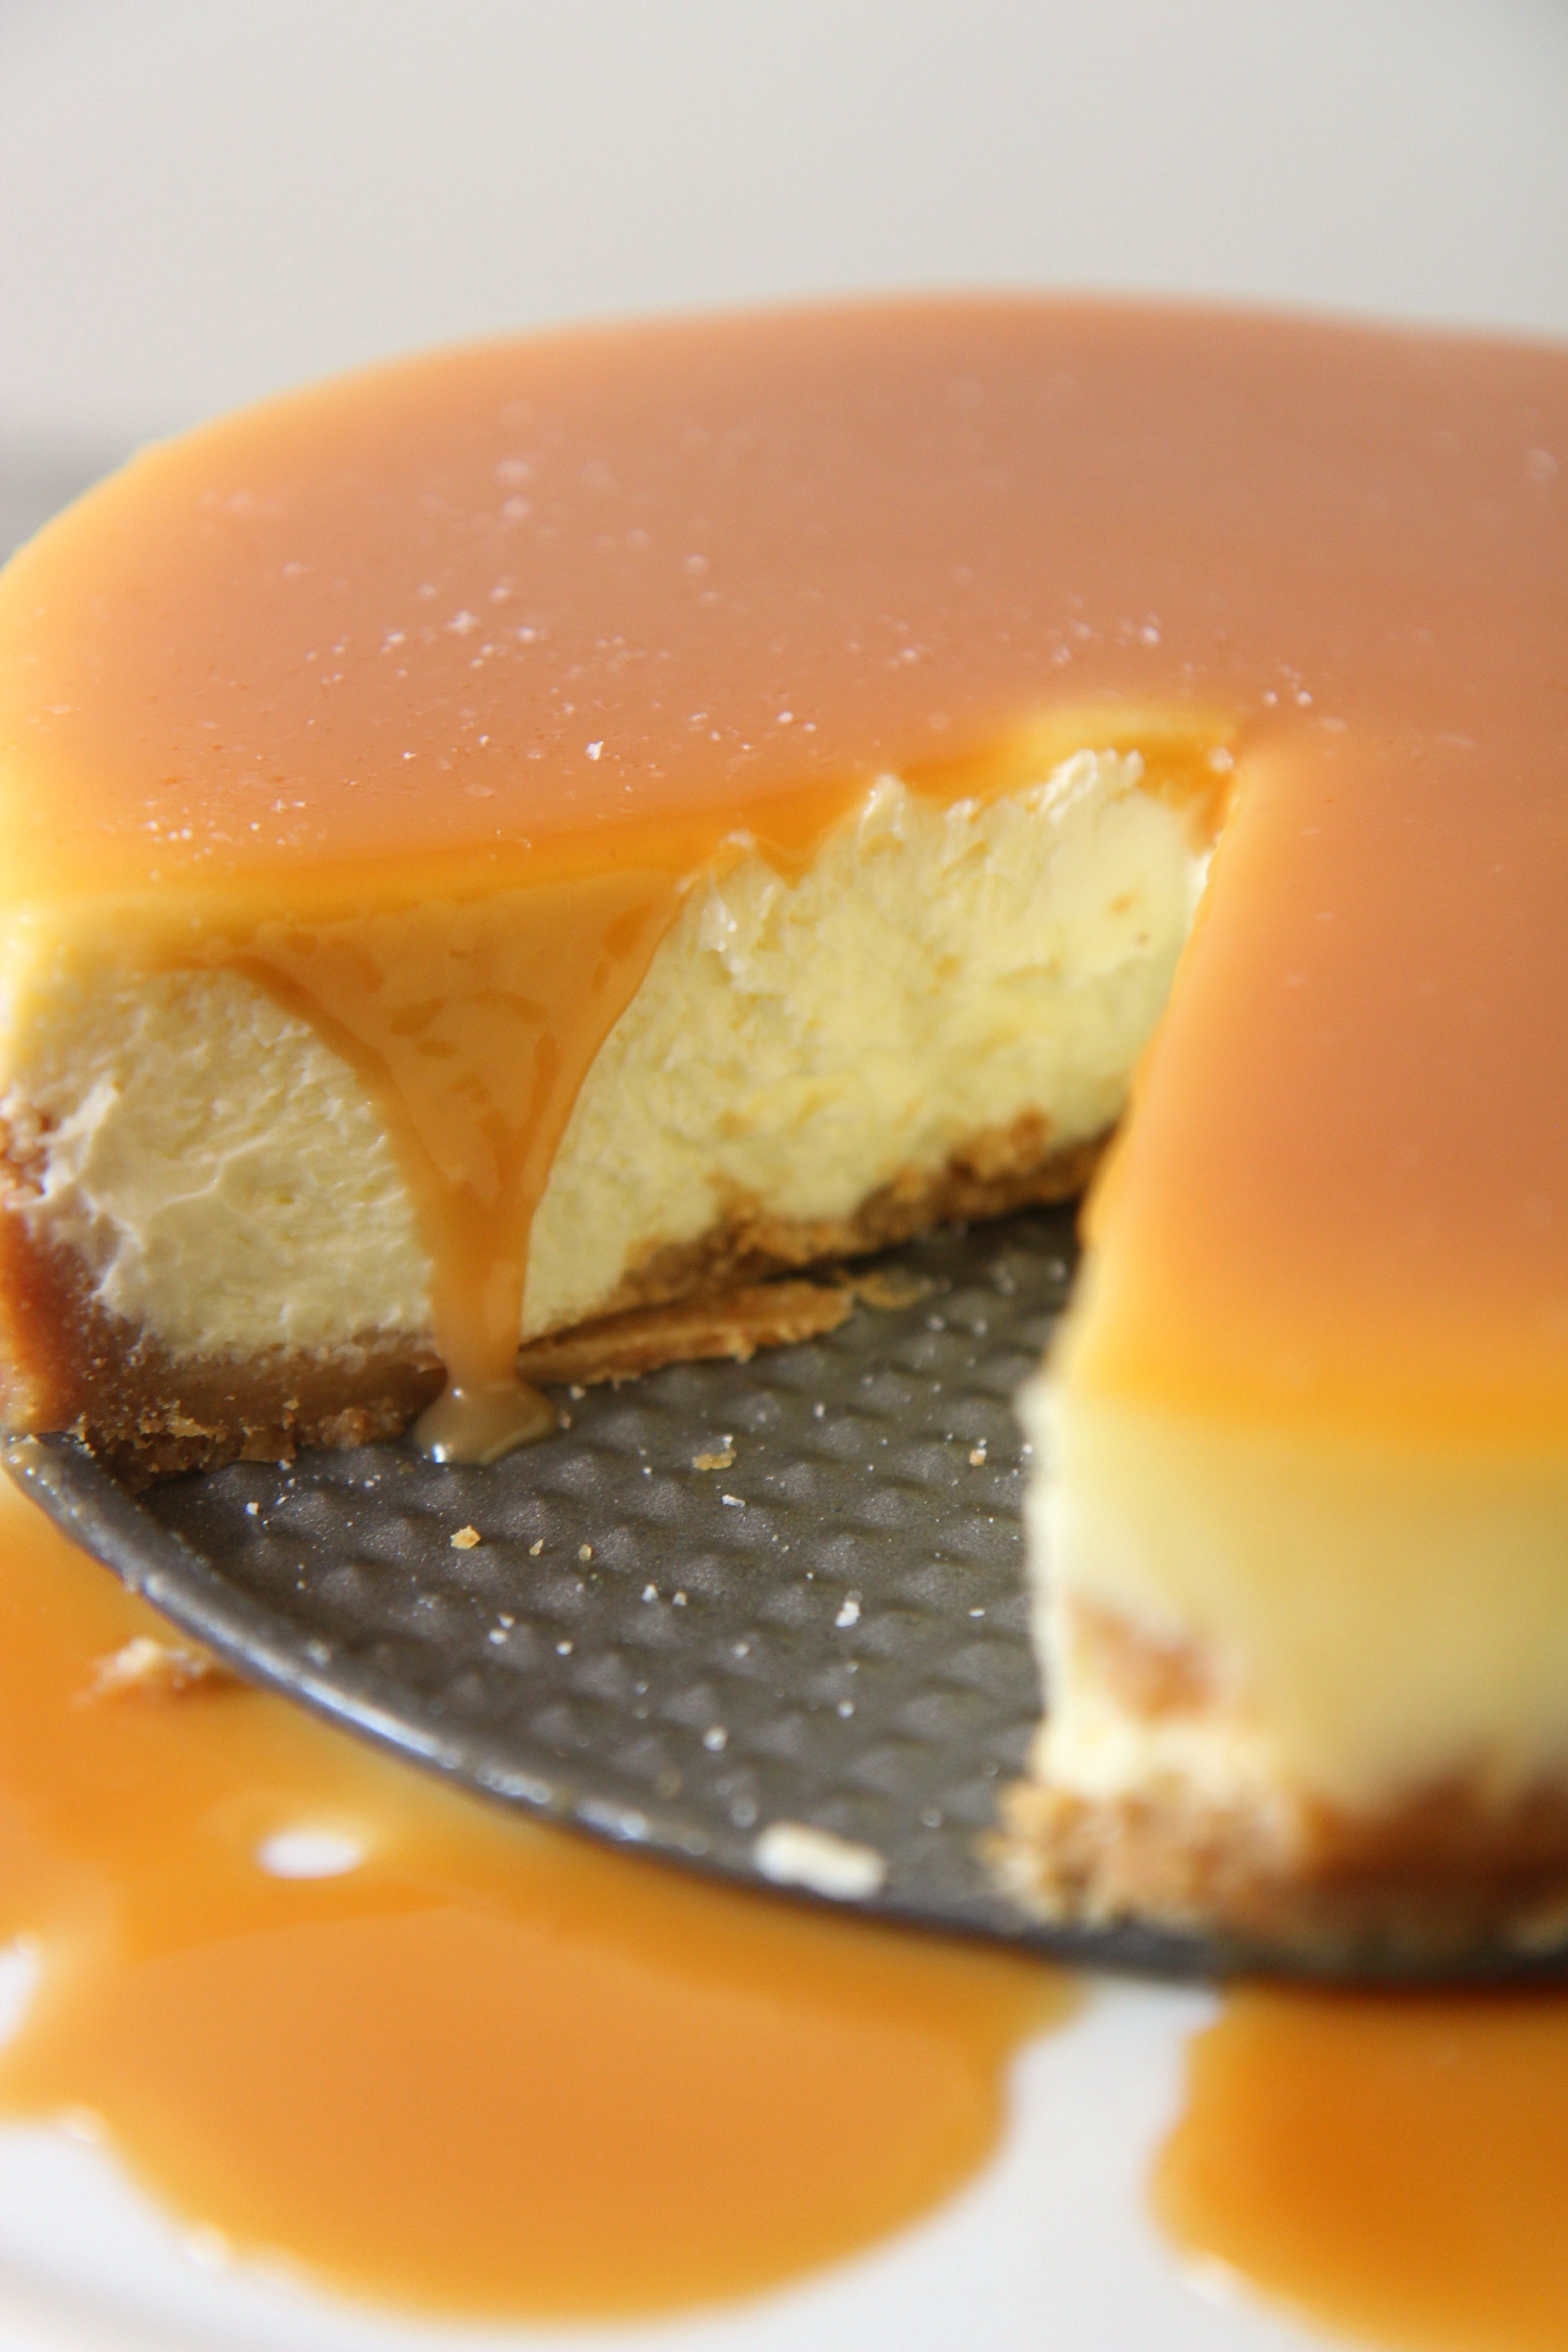 Sweet, Salty and decadent, this cheesecake hits the spot!